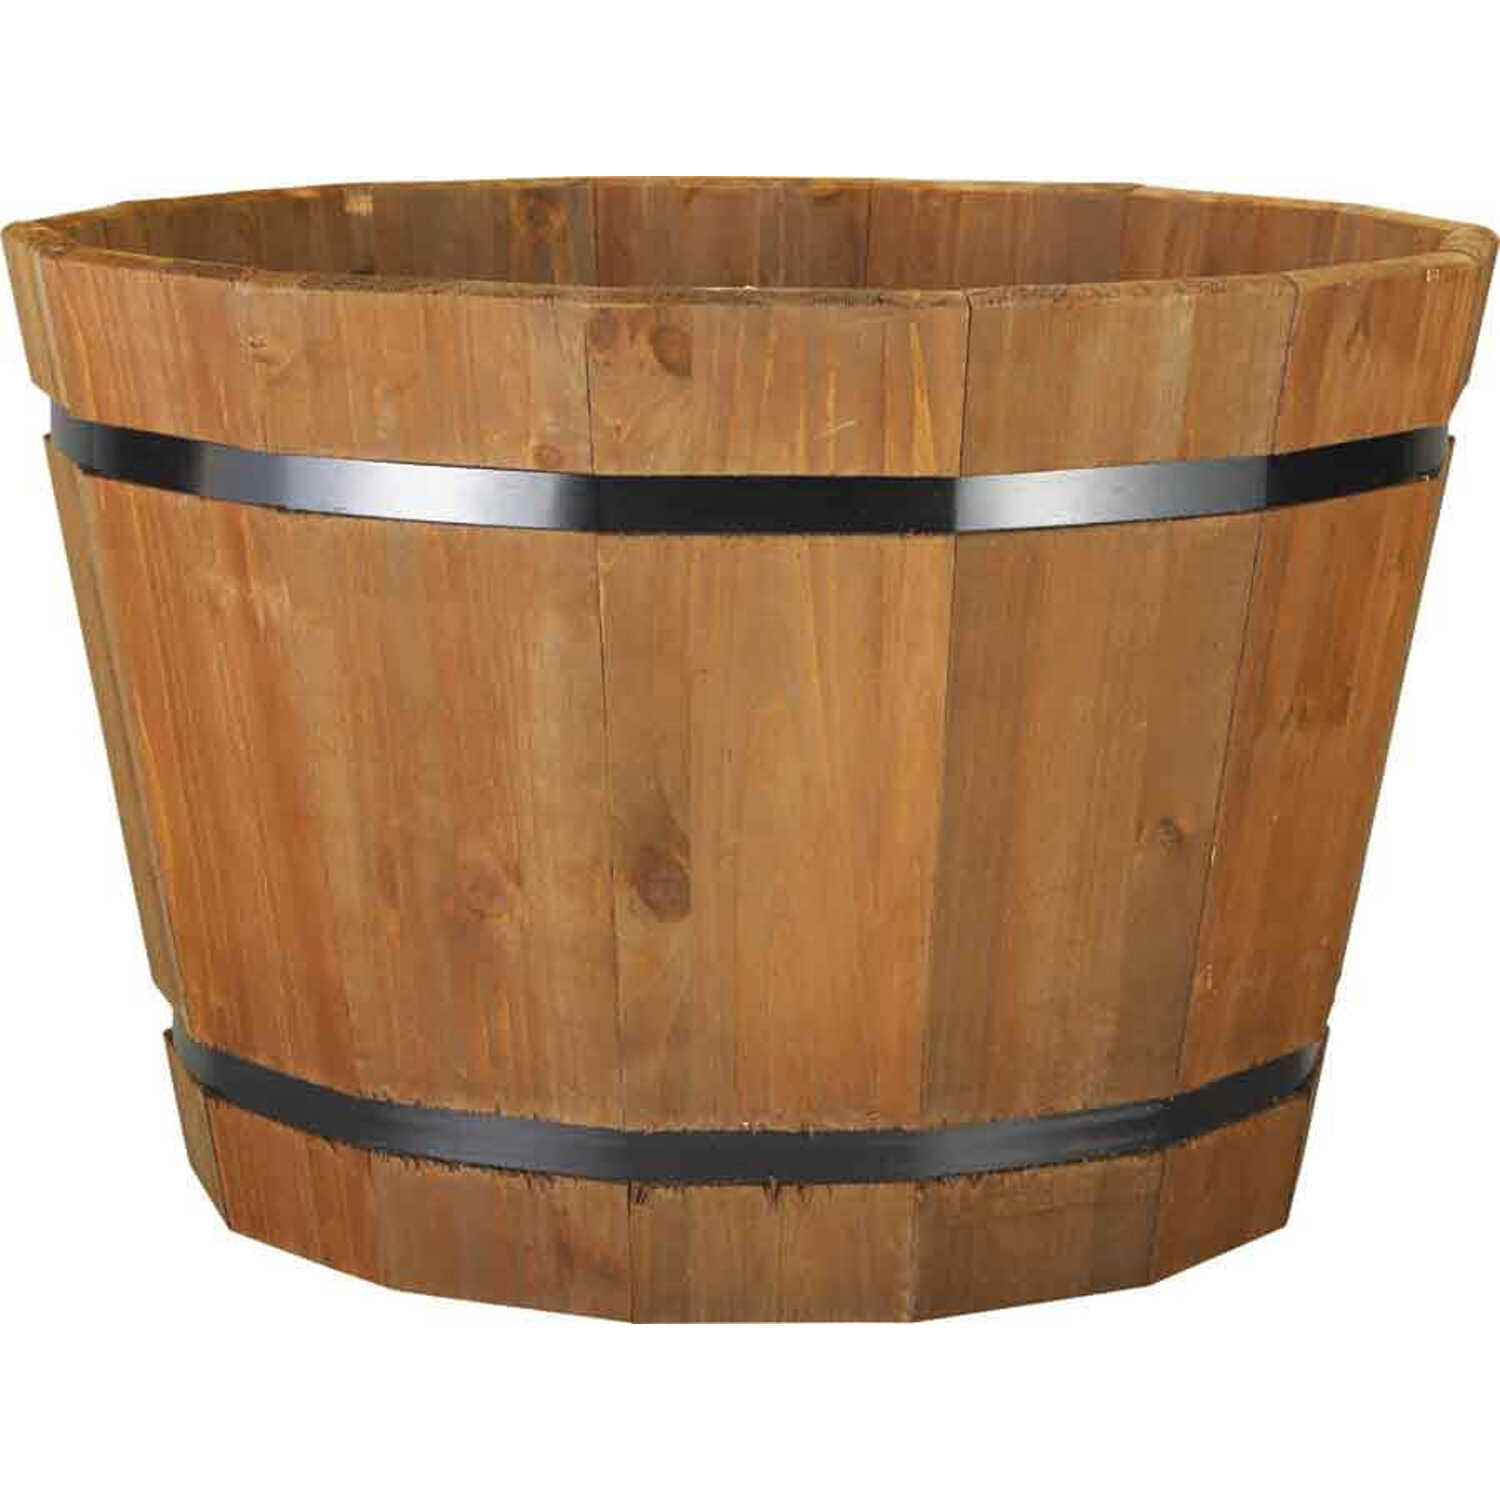 Pennington  13.12 in. H x 20 in. W x 20 in. D Heartwood  Natural  Planter